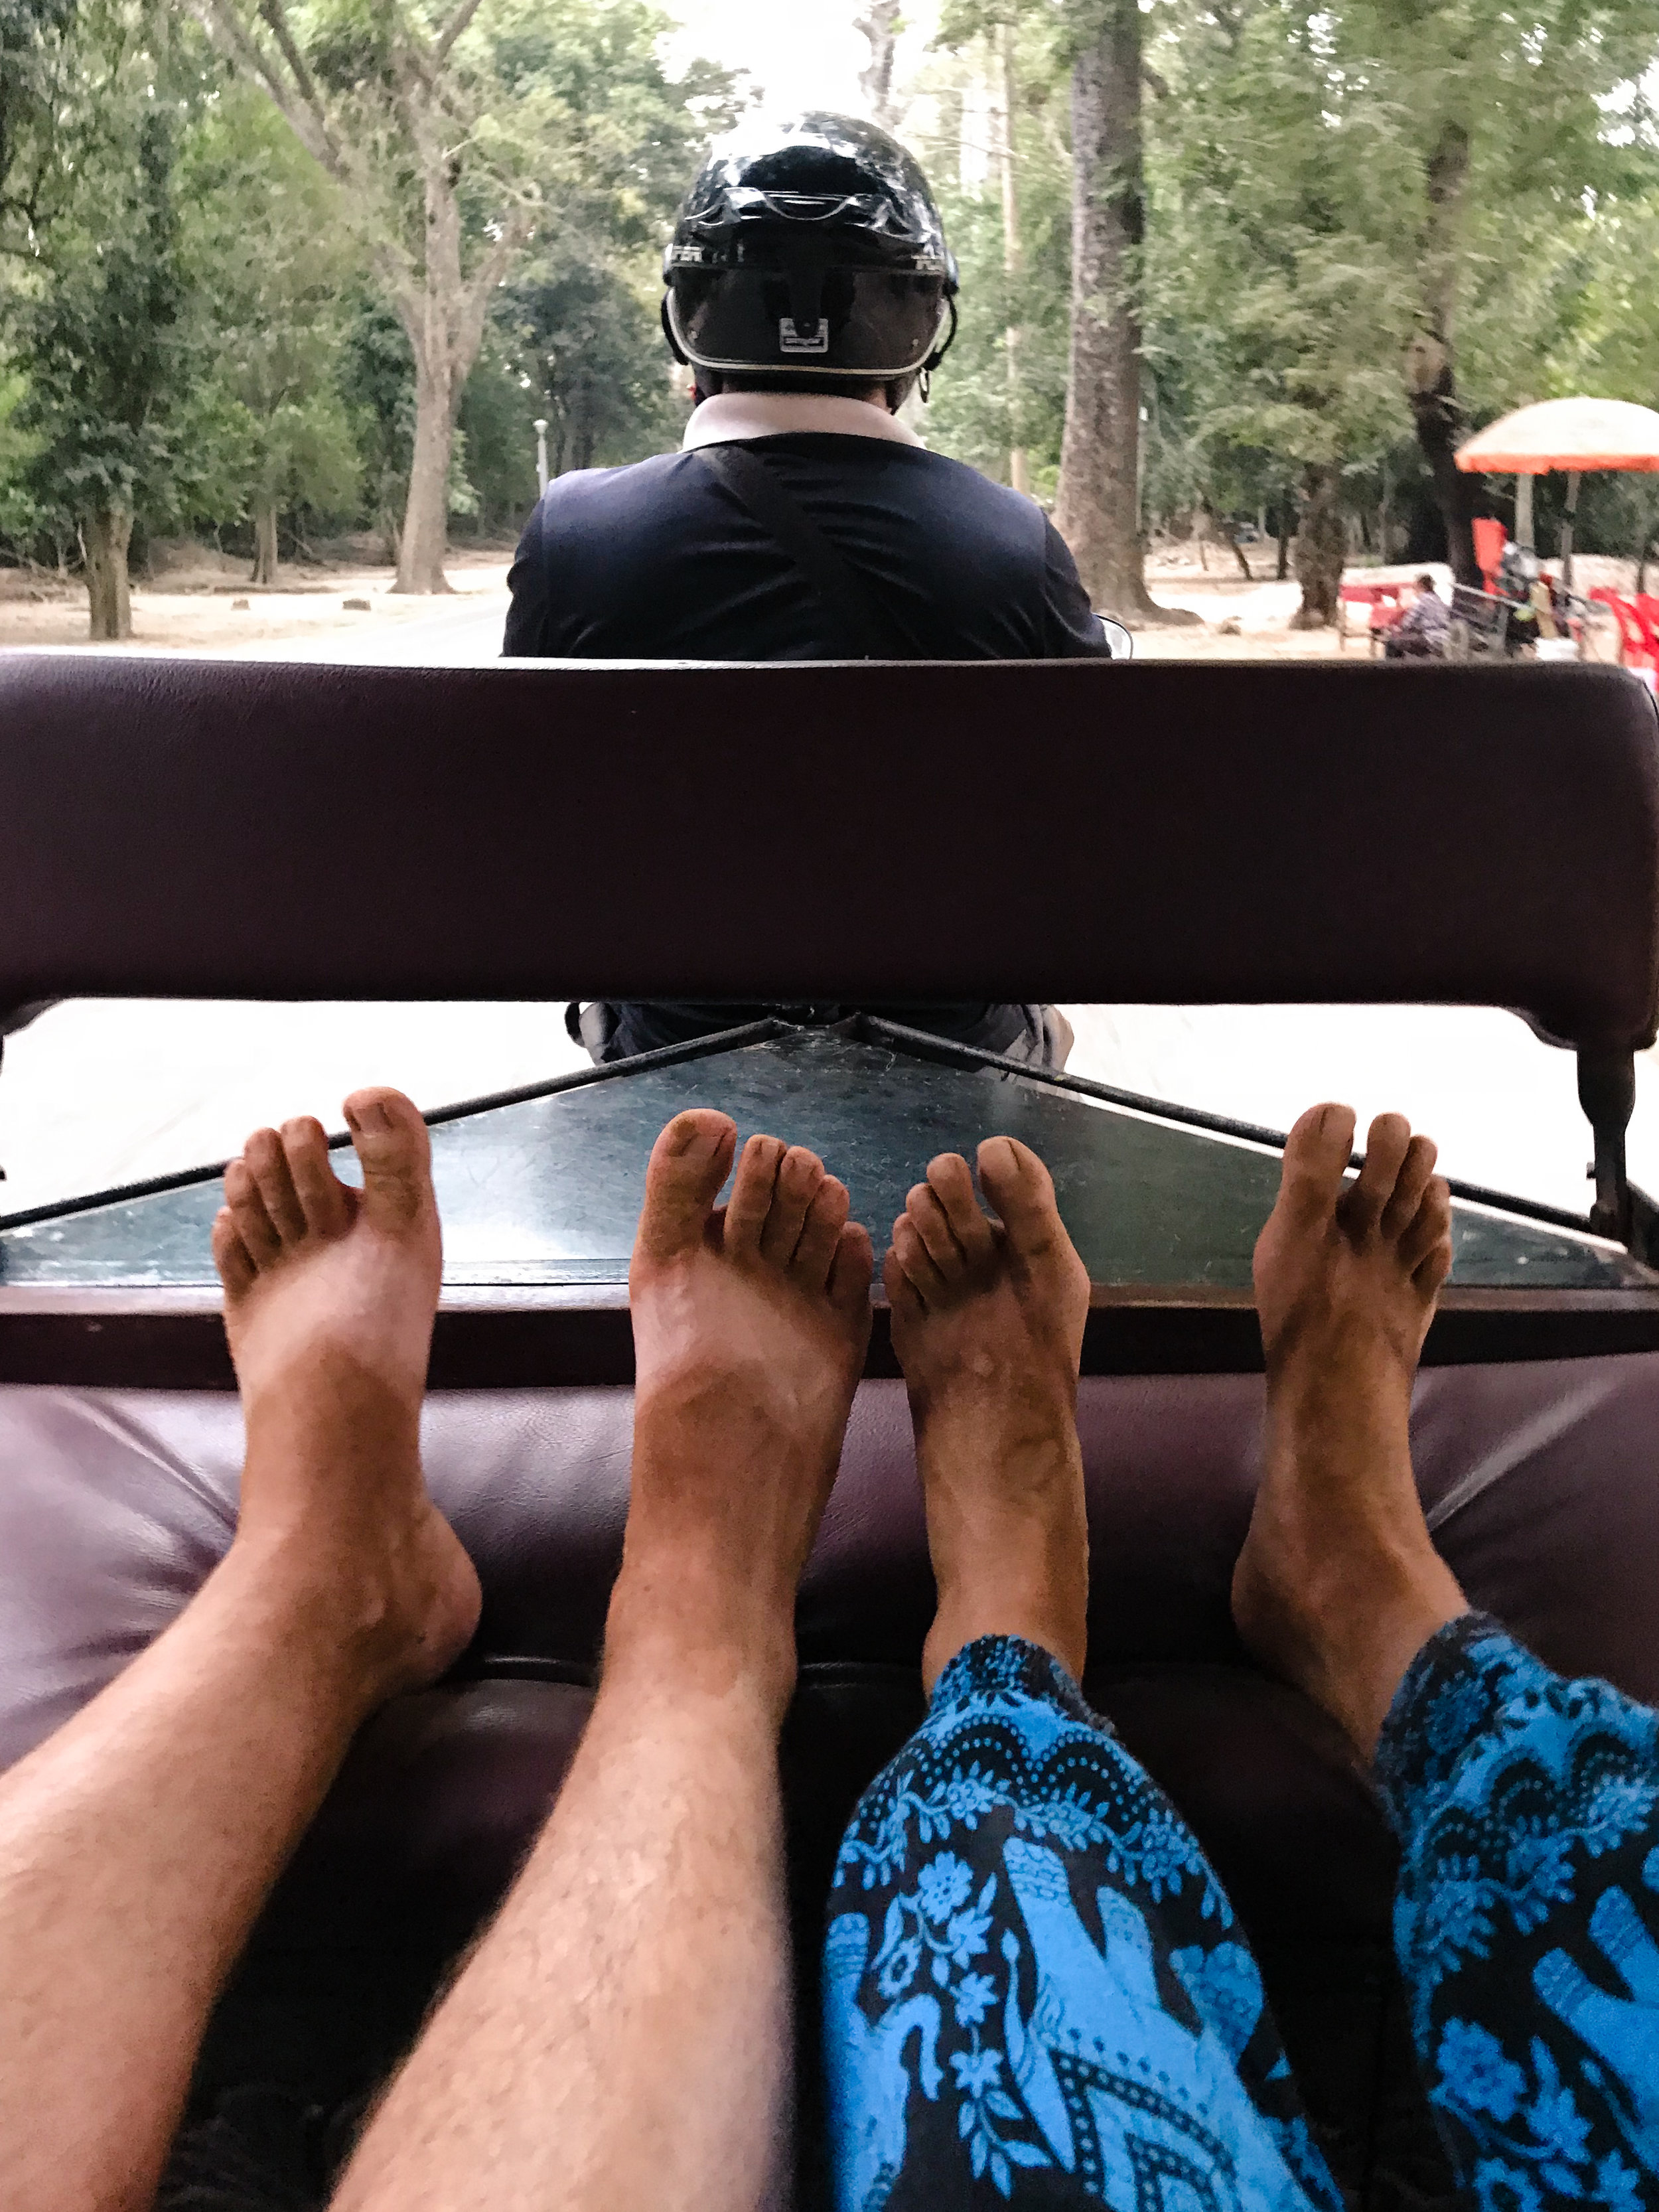 EW, feet? Gross. Double gross that they're orange by the end of a day at Angkor Wat.